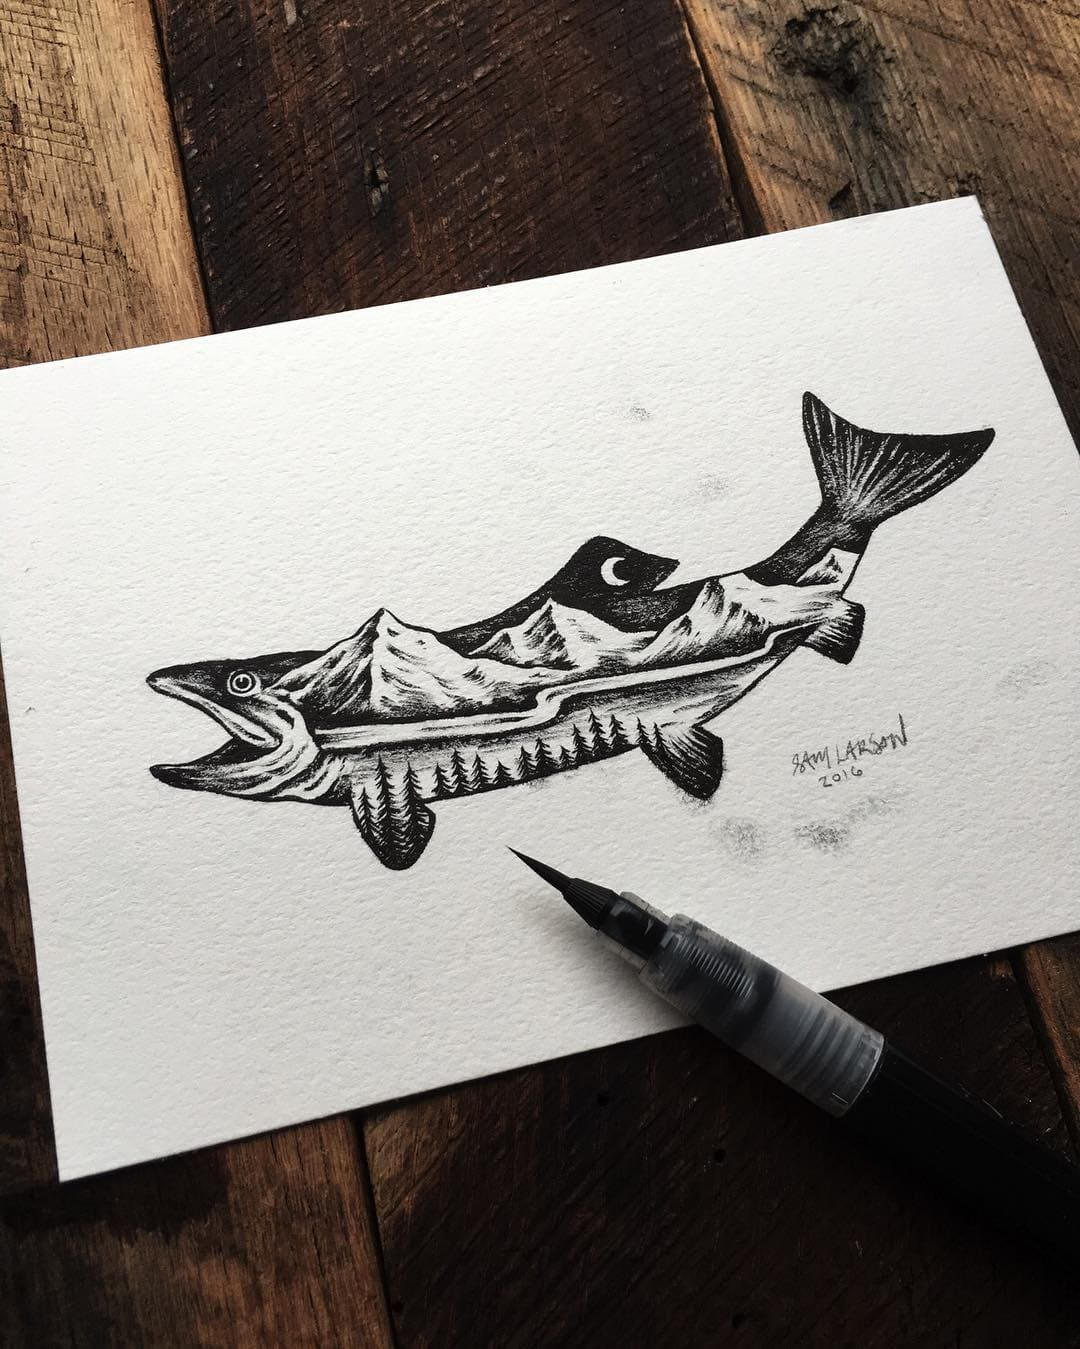 Double Exposure Fish Ink Illustration by Sam Larson